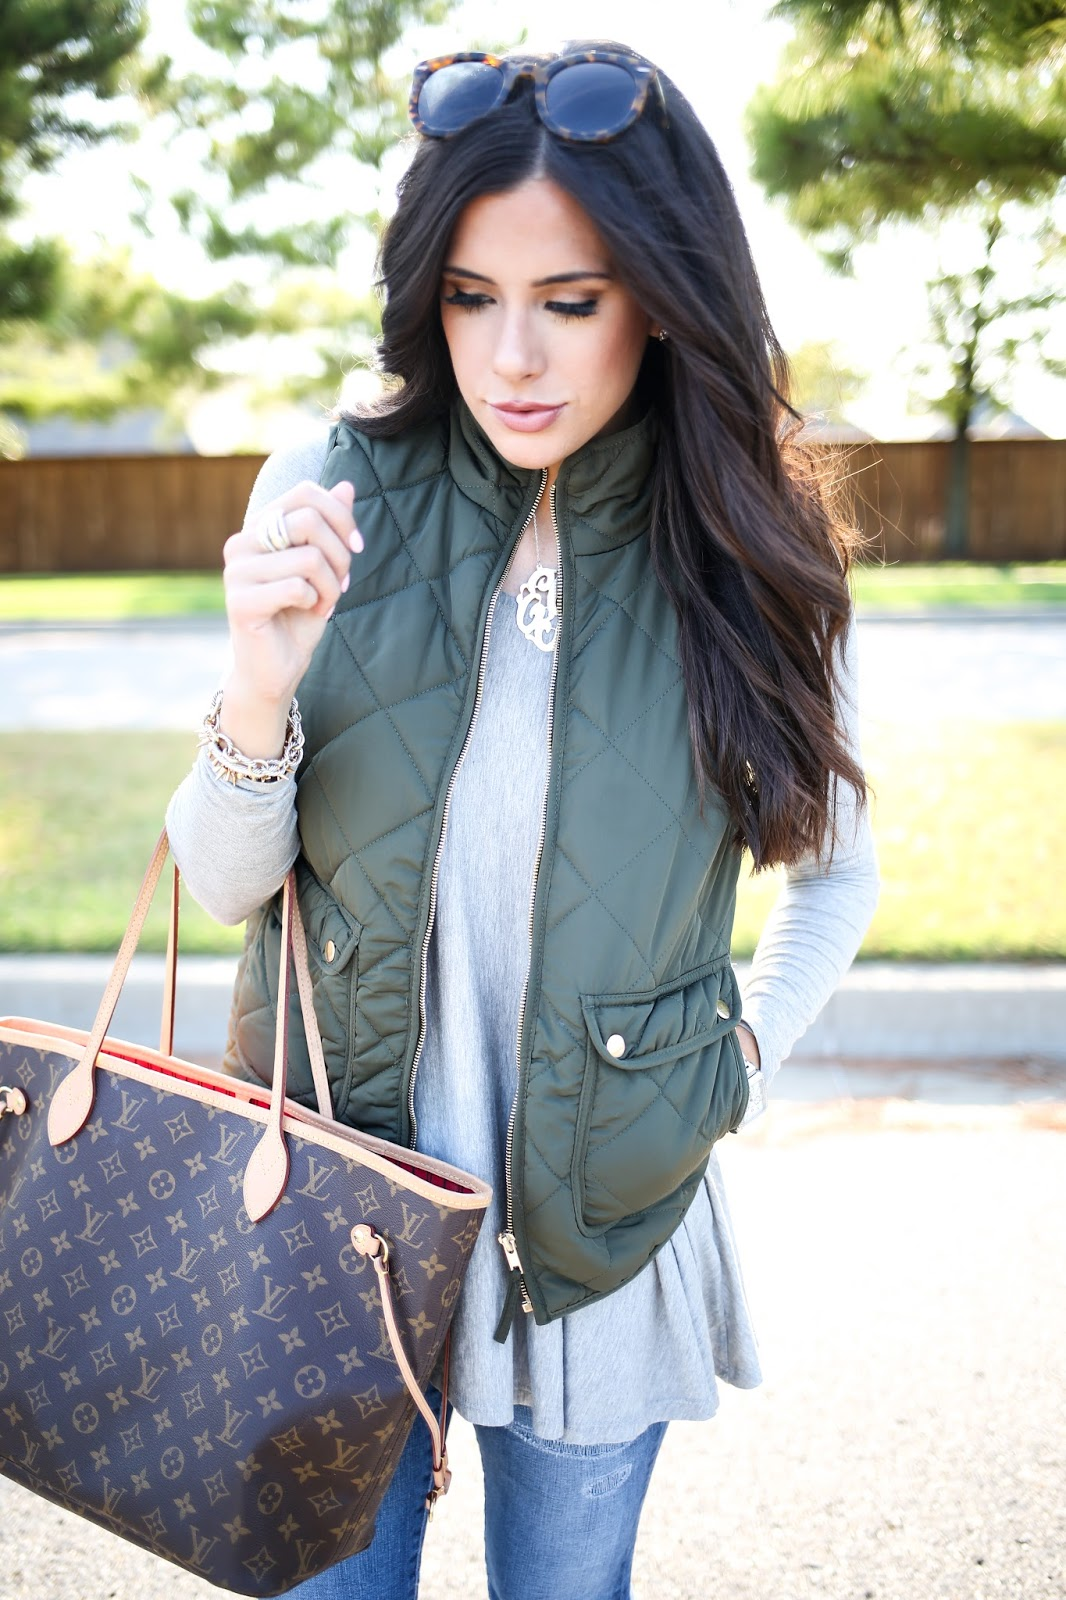 chloe elsie shoulder bag - Gearing Up for Fall | The Sweetest Thing | Bloglovin'